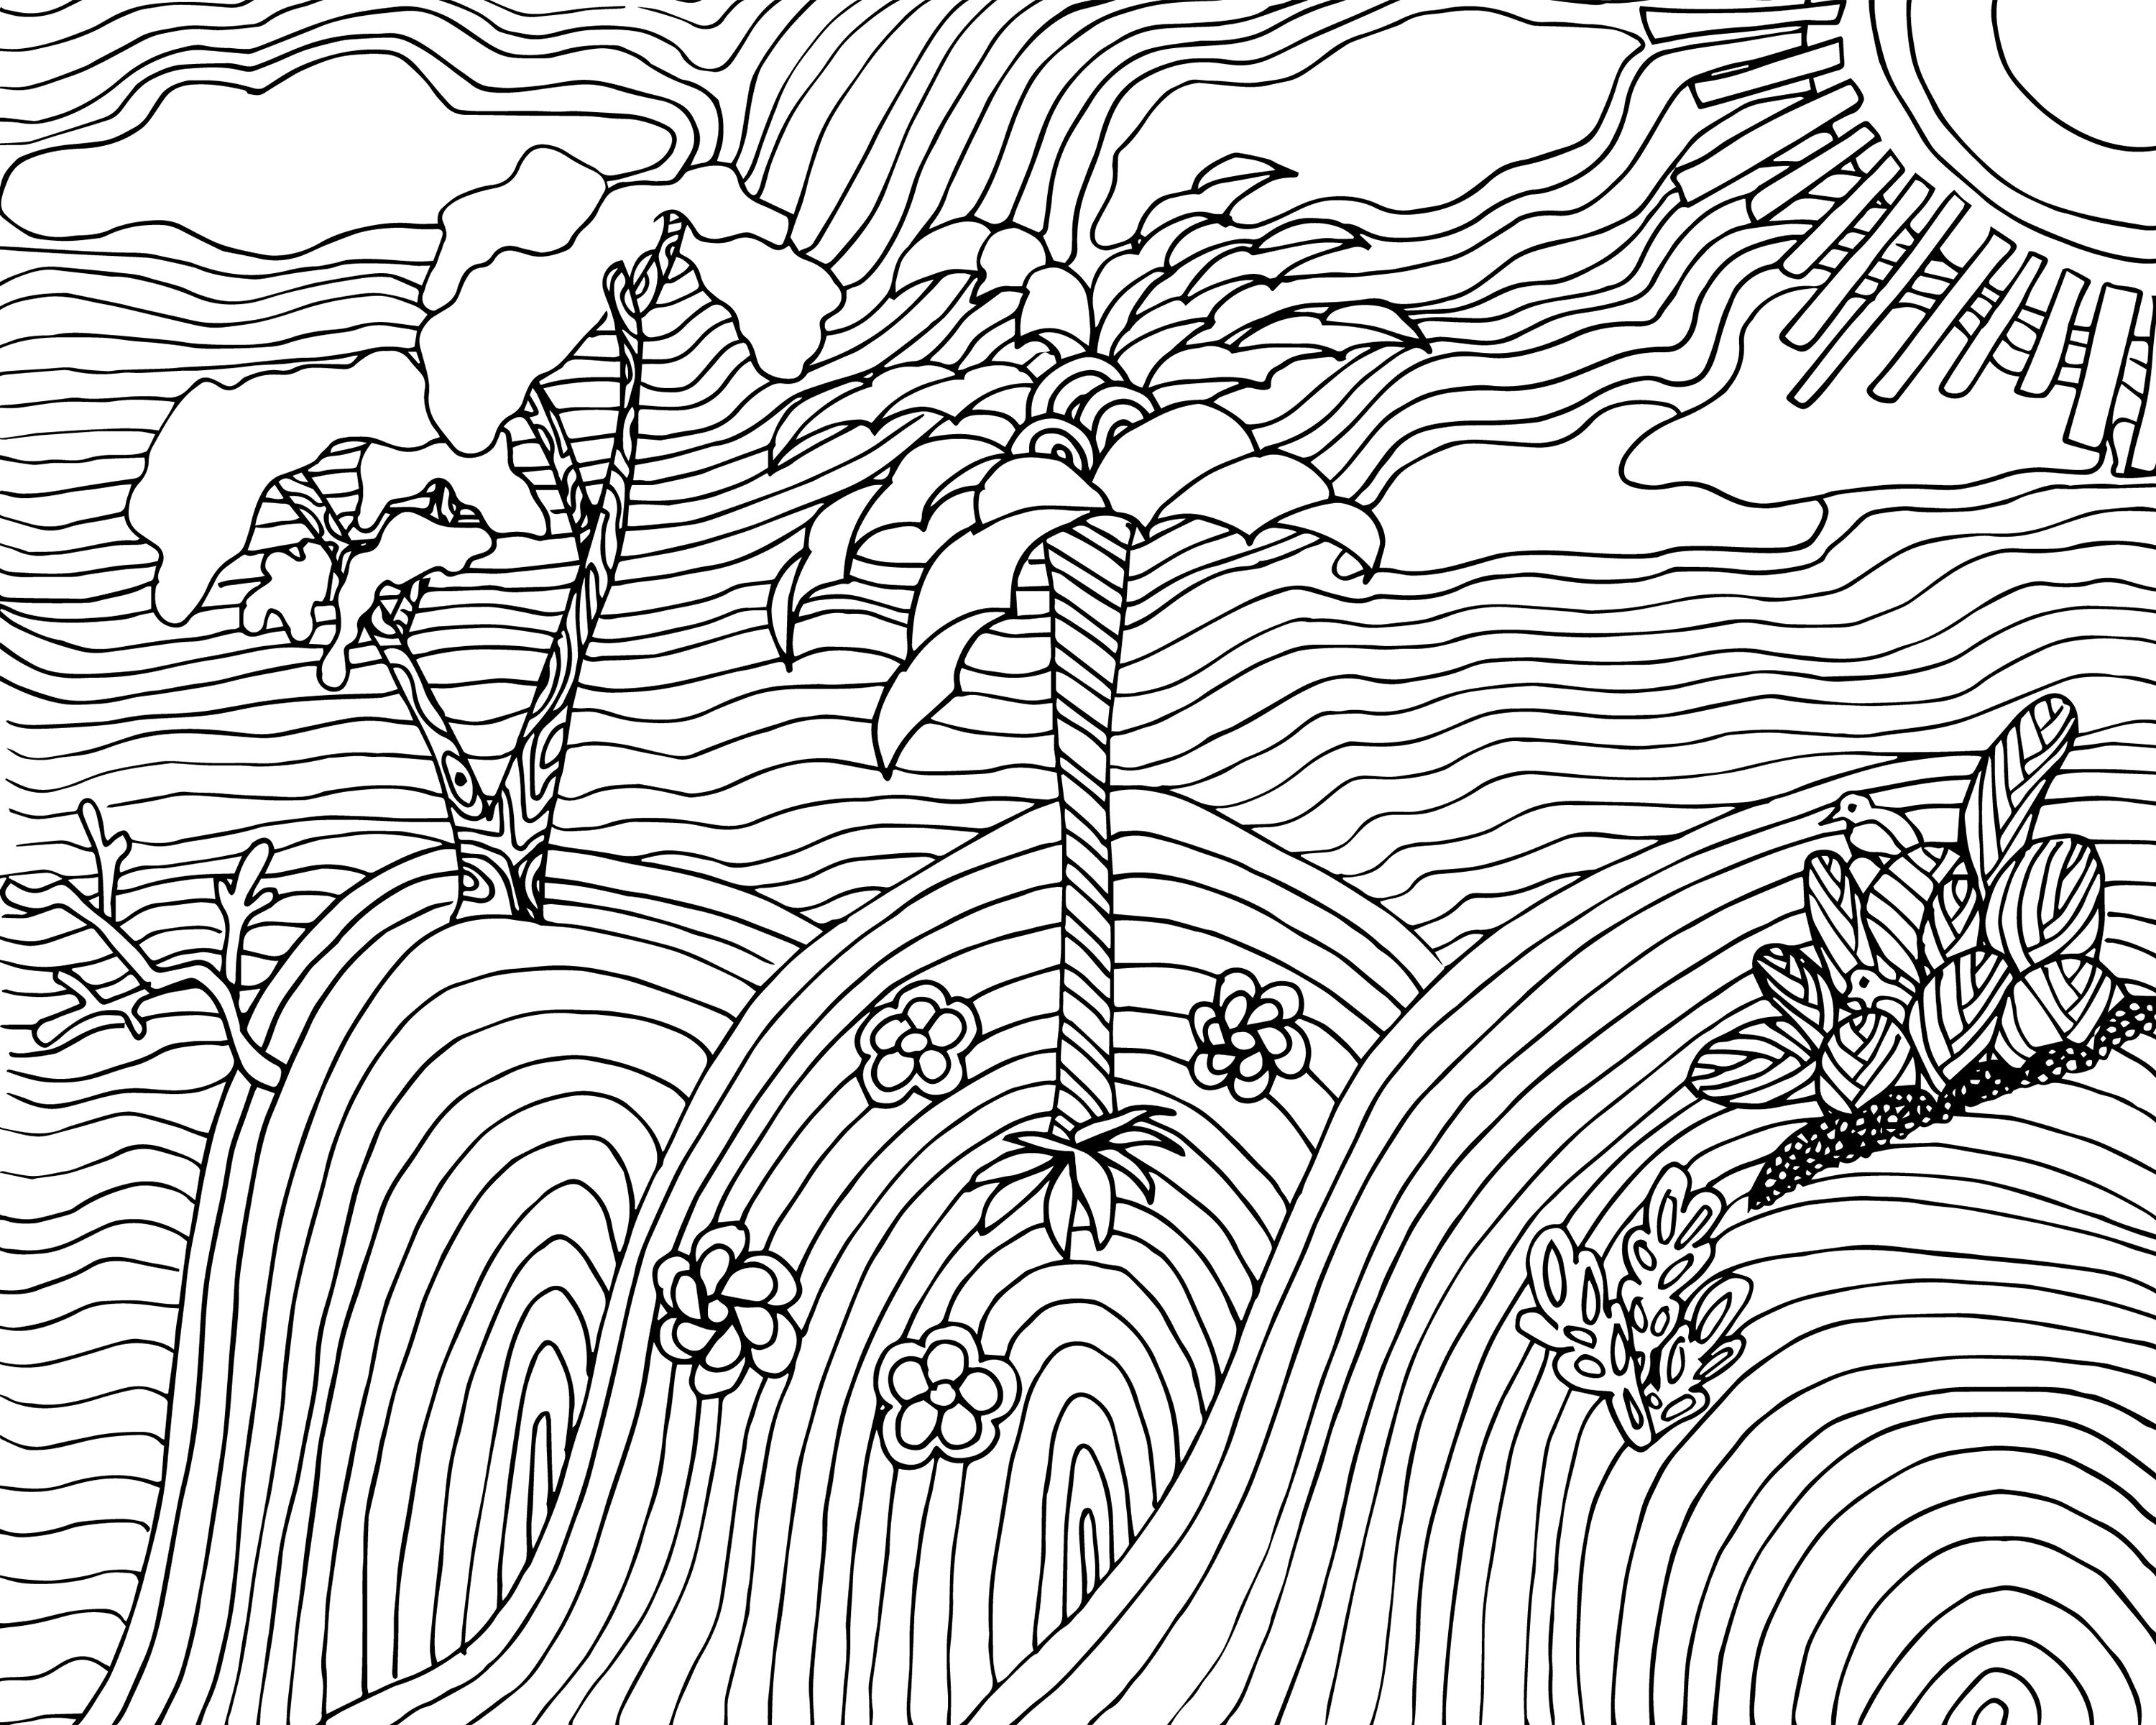 FREE Landscape Coloring Page For Adults